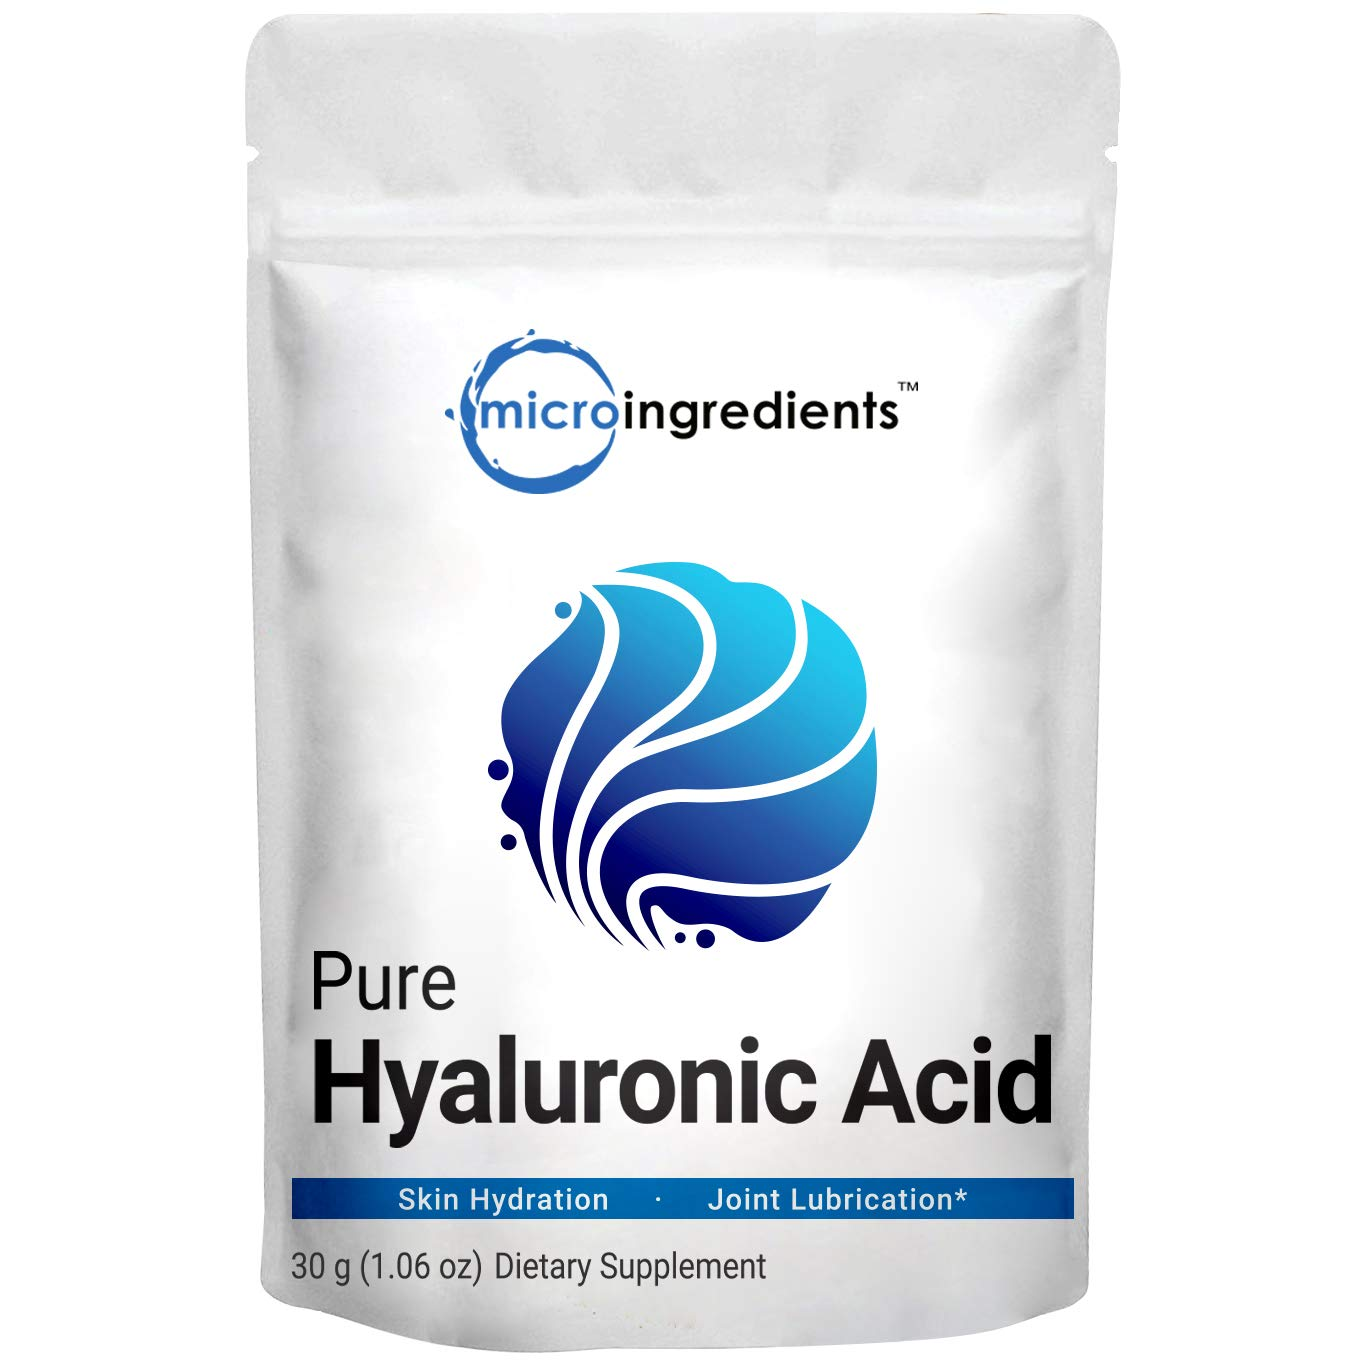 Pure Hyaluronic Acid Serum Powder, Making Anti Aging Serum for Face and Skin, 30 Gram, Support Antioxidant, Hydration and Moisture, No GMOs, Vegan